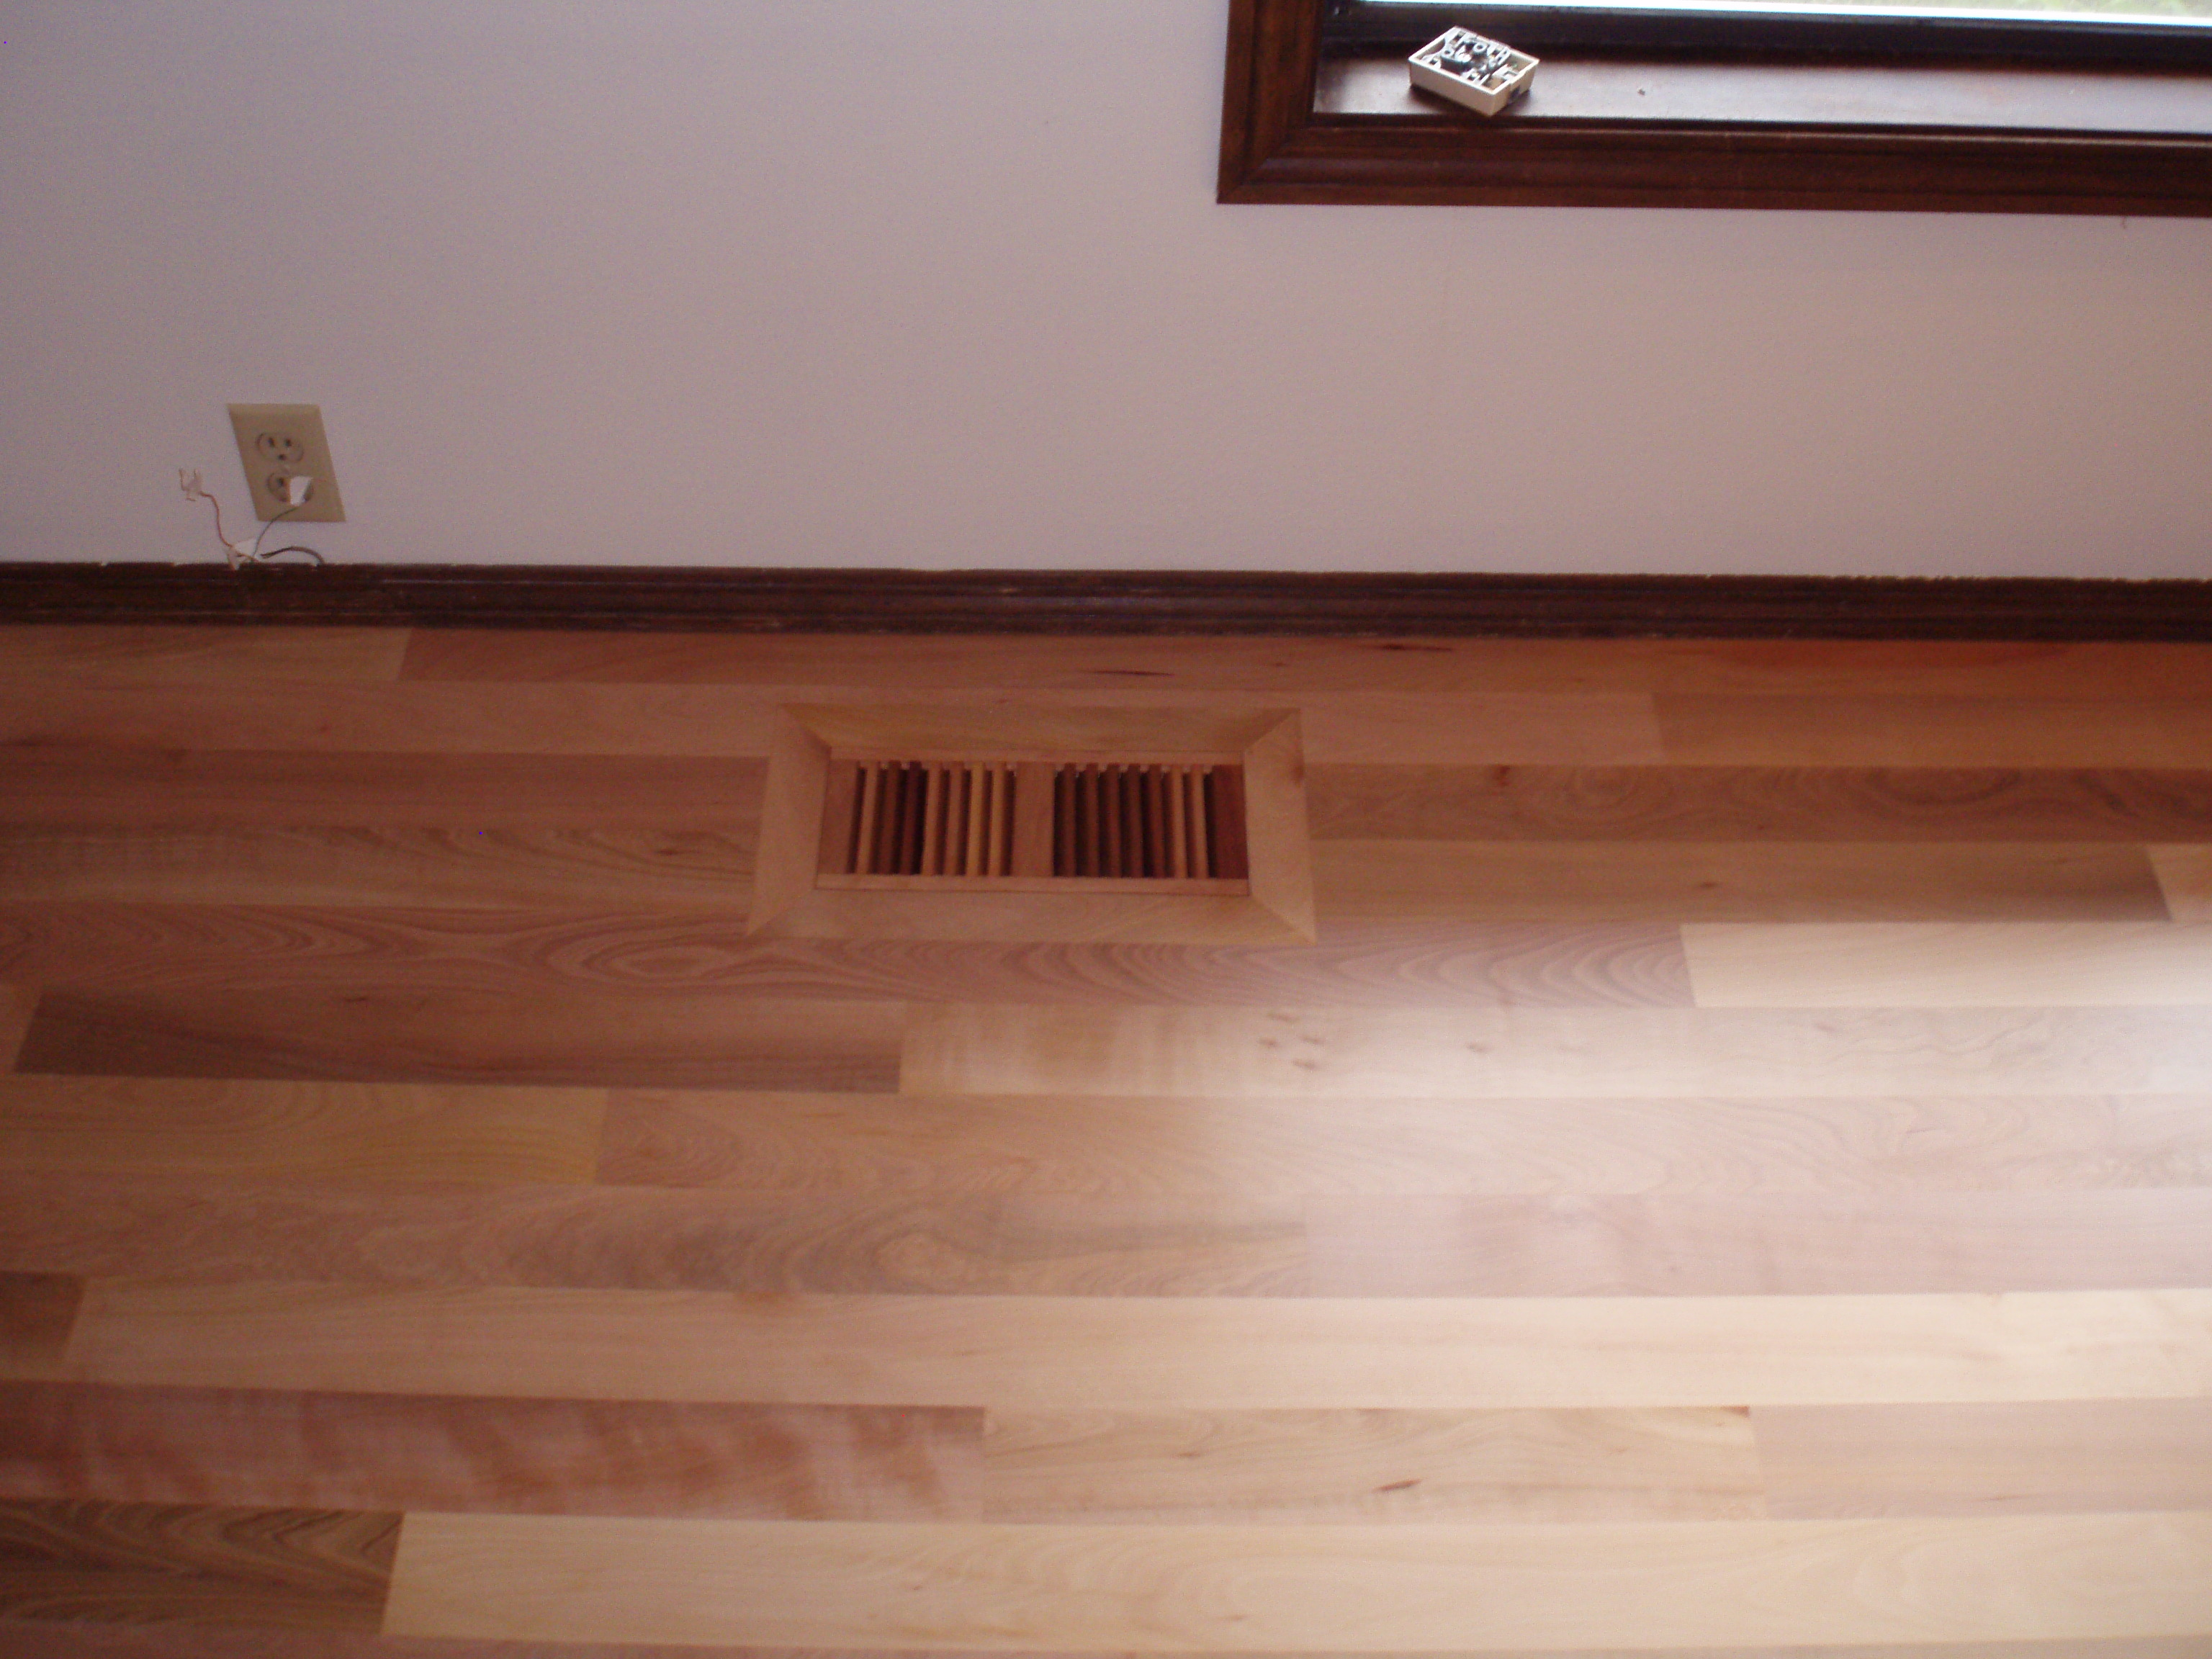 decorative inspirations top vents return registers vent house floors notch wall air covers floor grilles